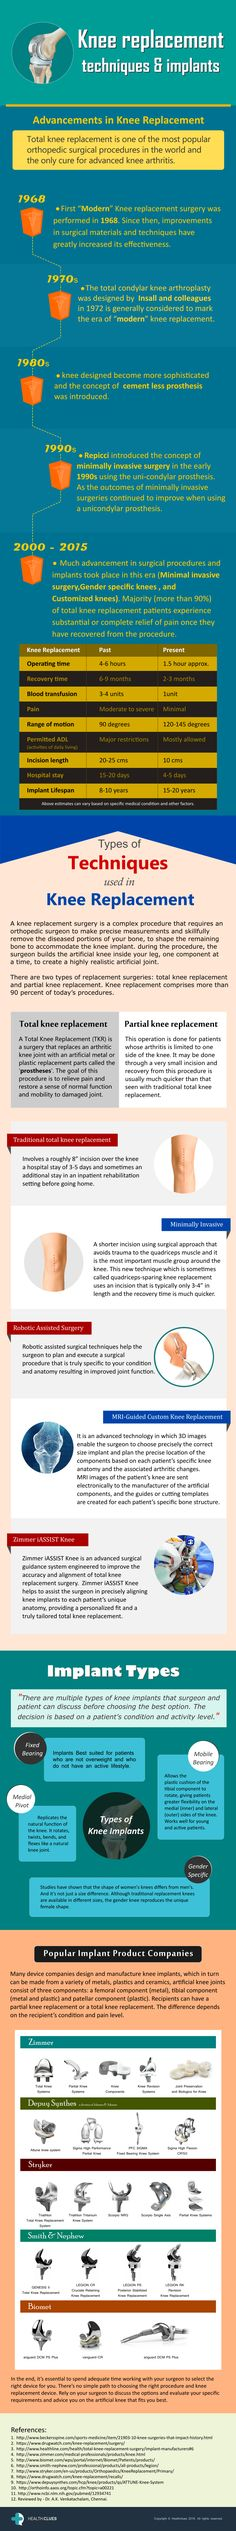 10-minute guide to Knee Replacement #Infographic #Health